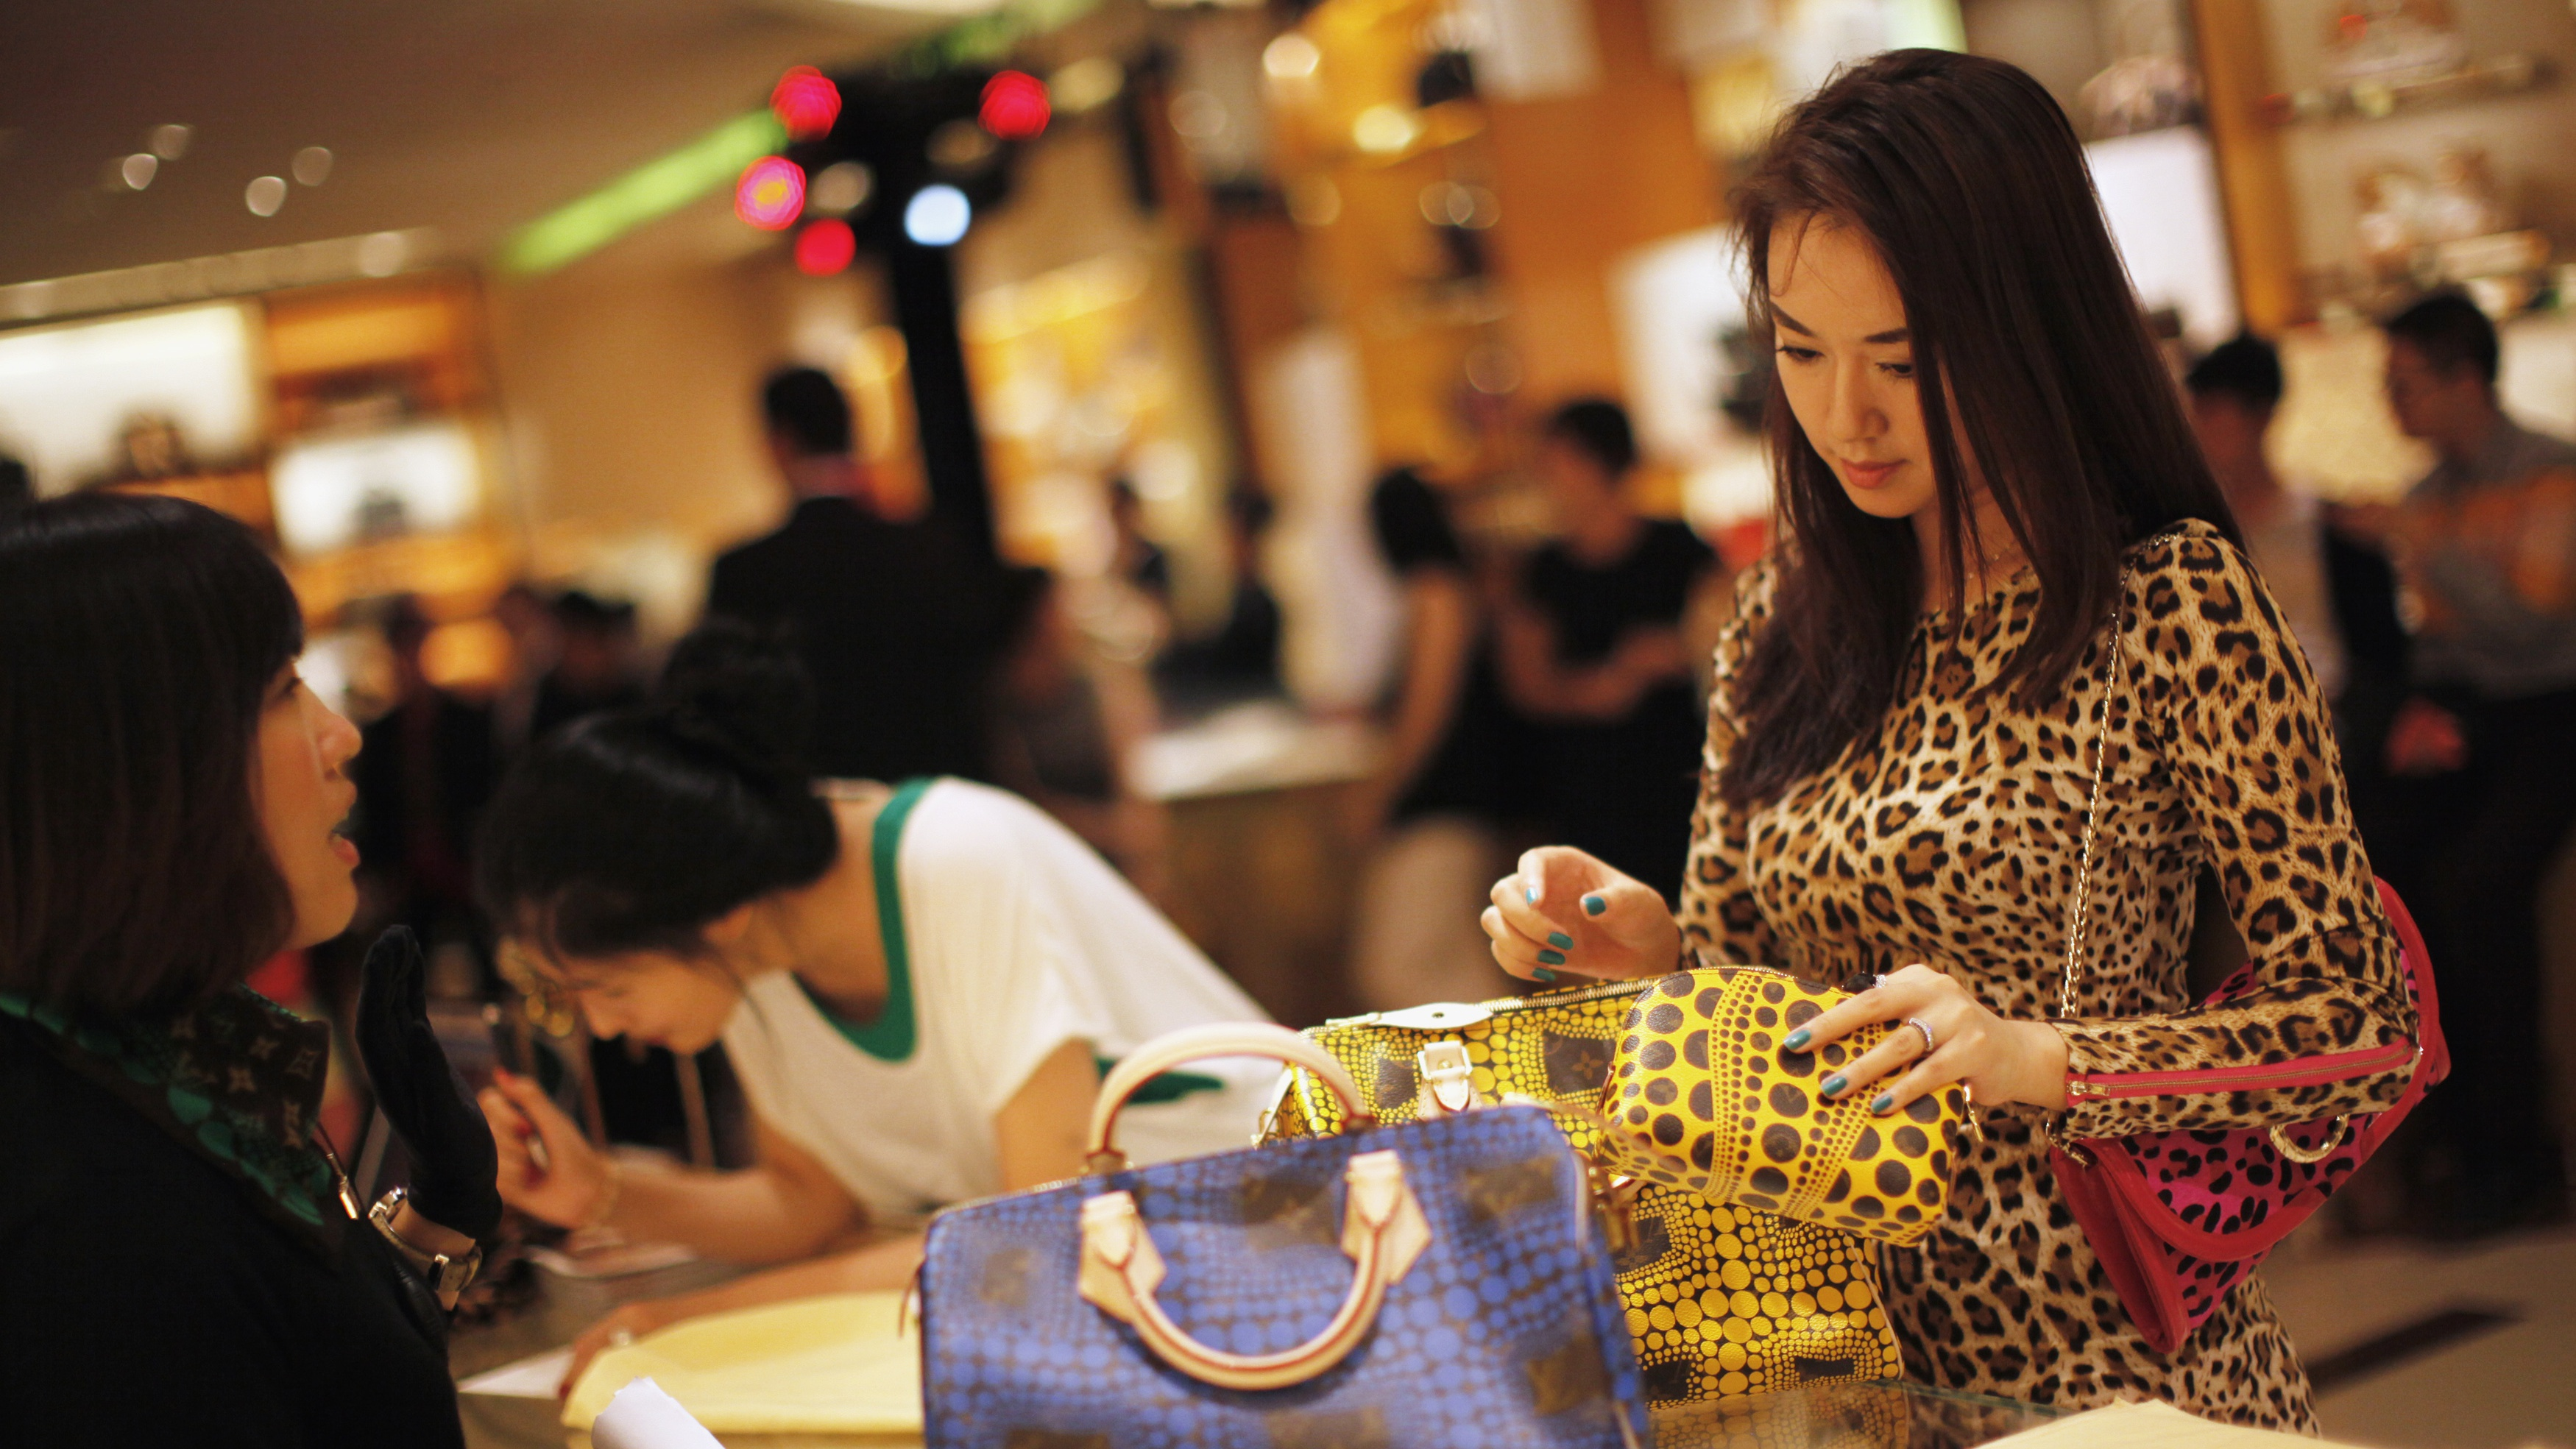 china wants its people to buy more western goods�in china